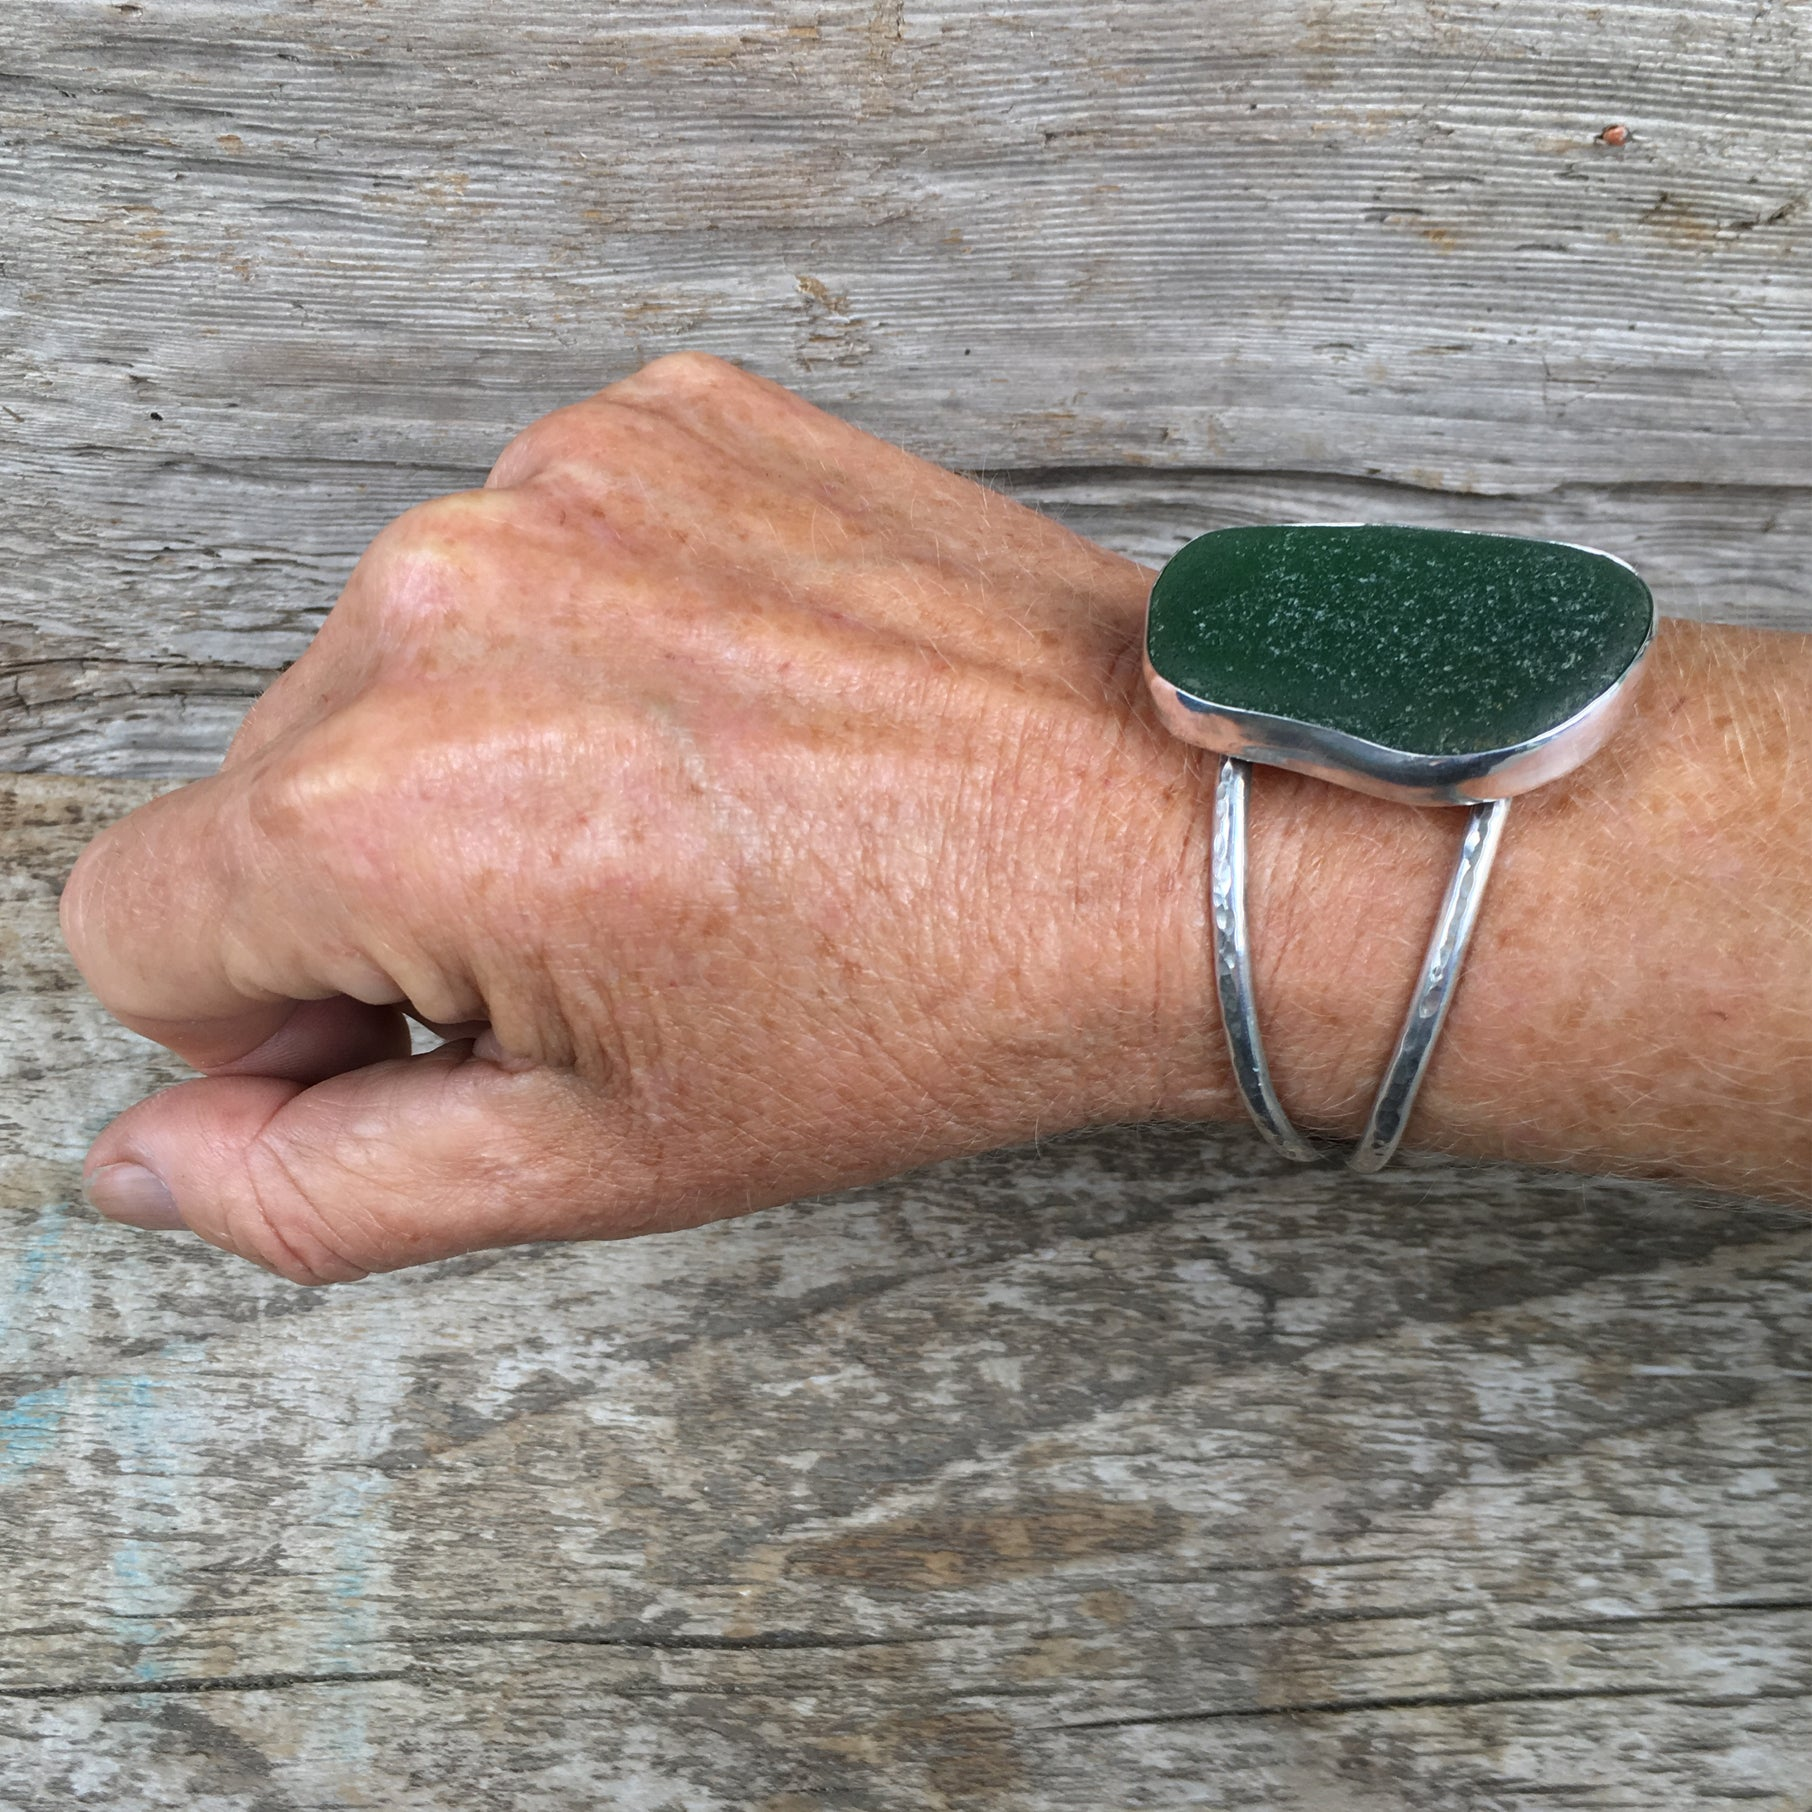 Luxe Beachcomber Cuff with Extra Large Deep Green Seaglass Shown on Wrist at Angle